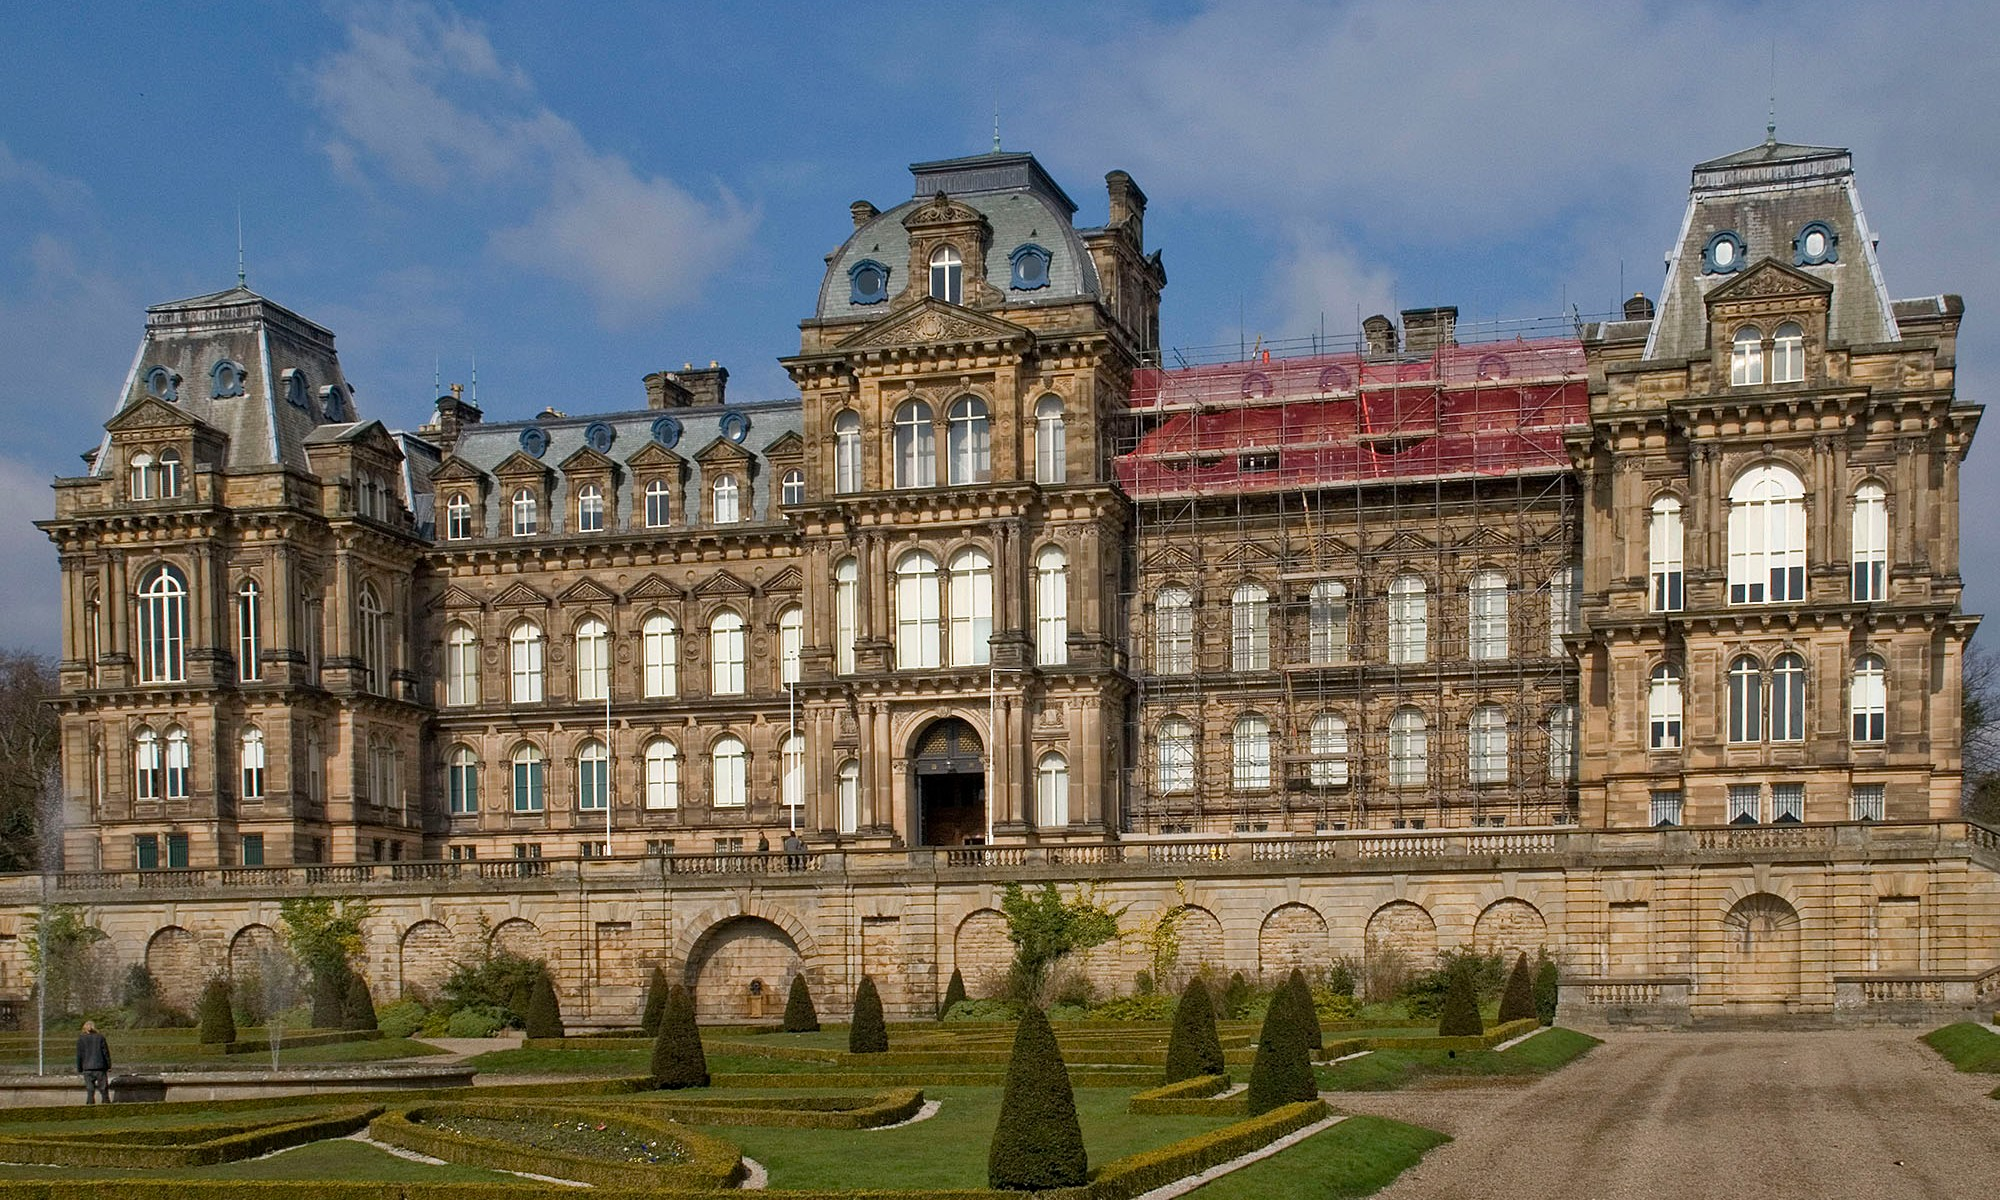 The Bowes Museum, Teesdale, County Durham